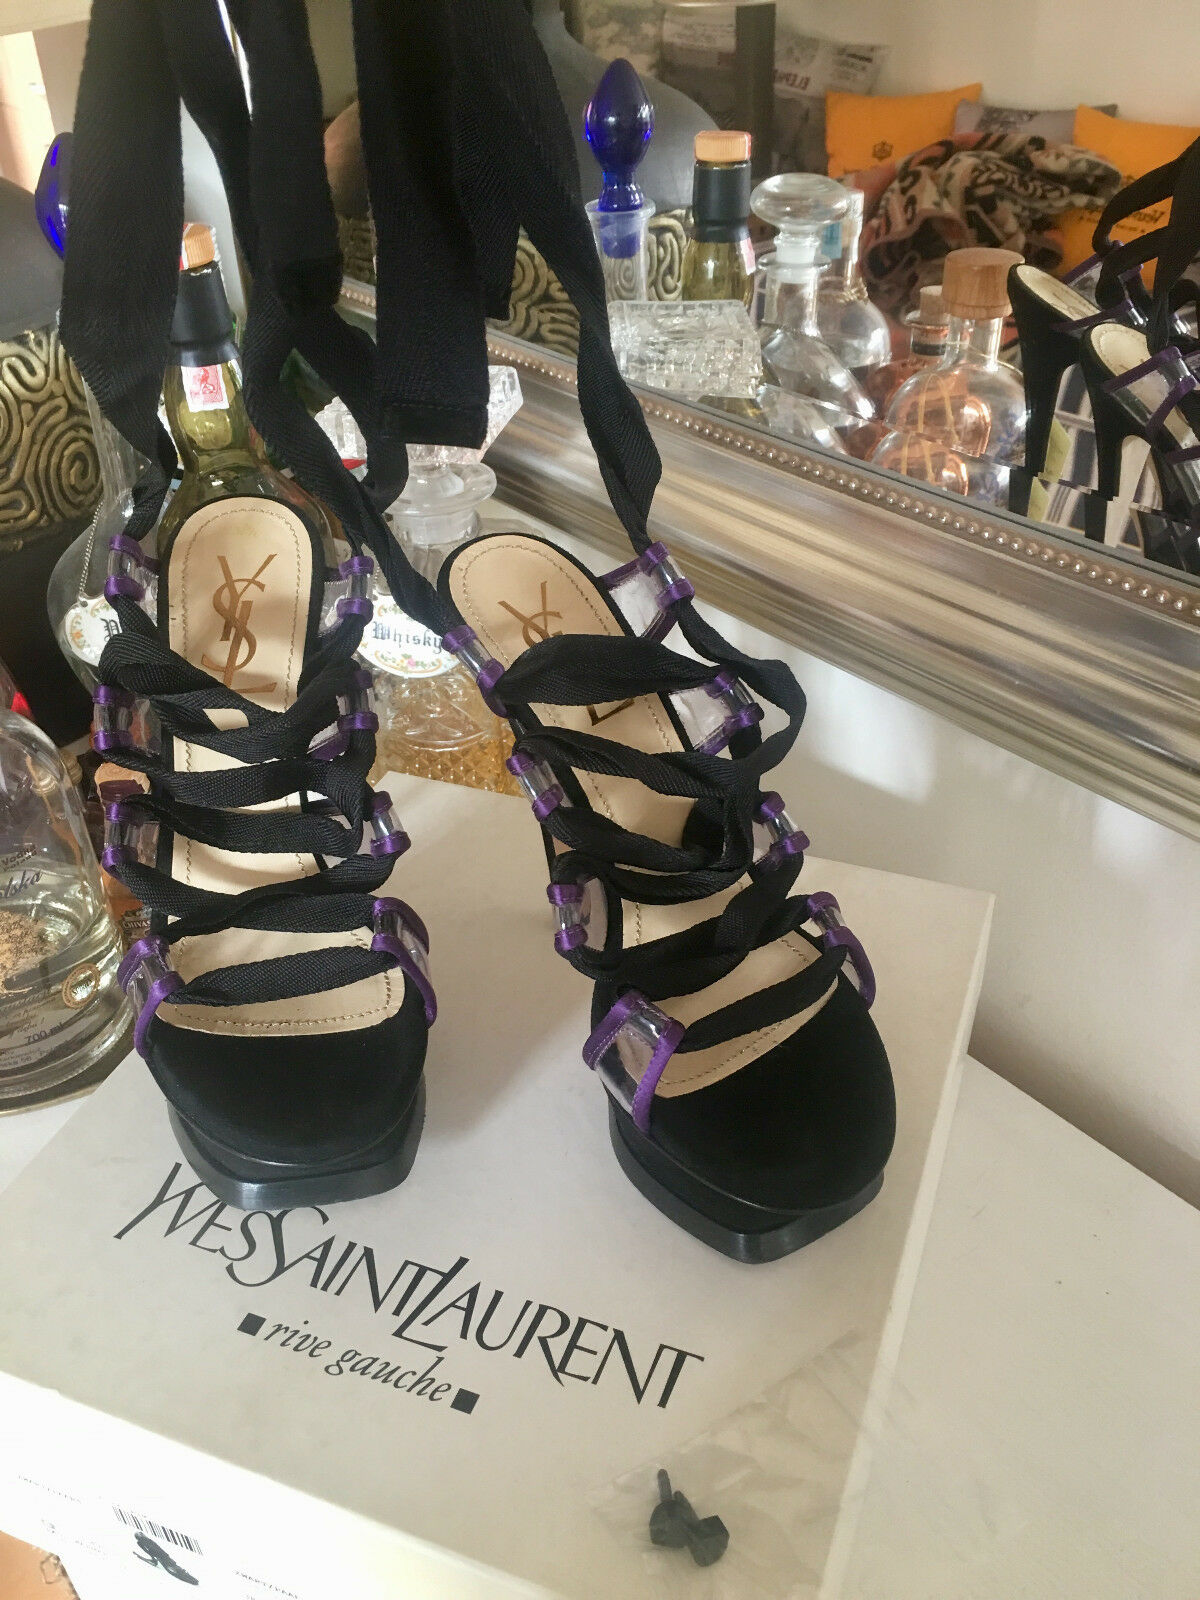 YSL lila naked kiss 105 105 105 lace pumps schuhe Yves Saint Laurent  NP 750 Euro 60b4ec